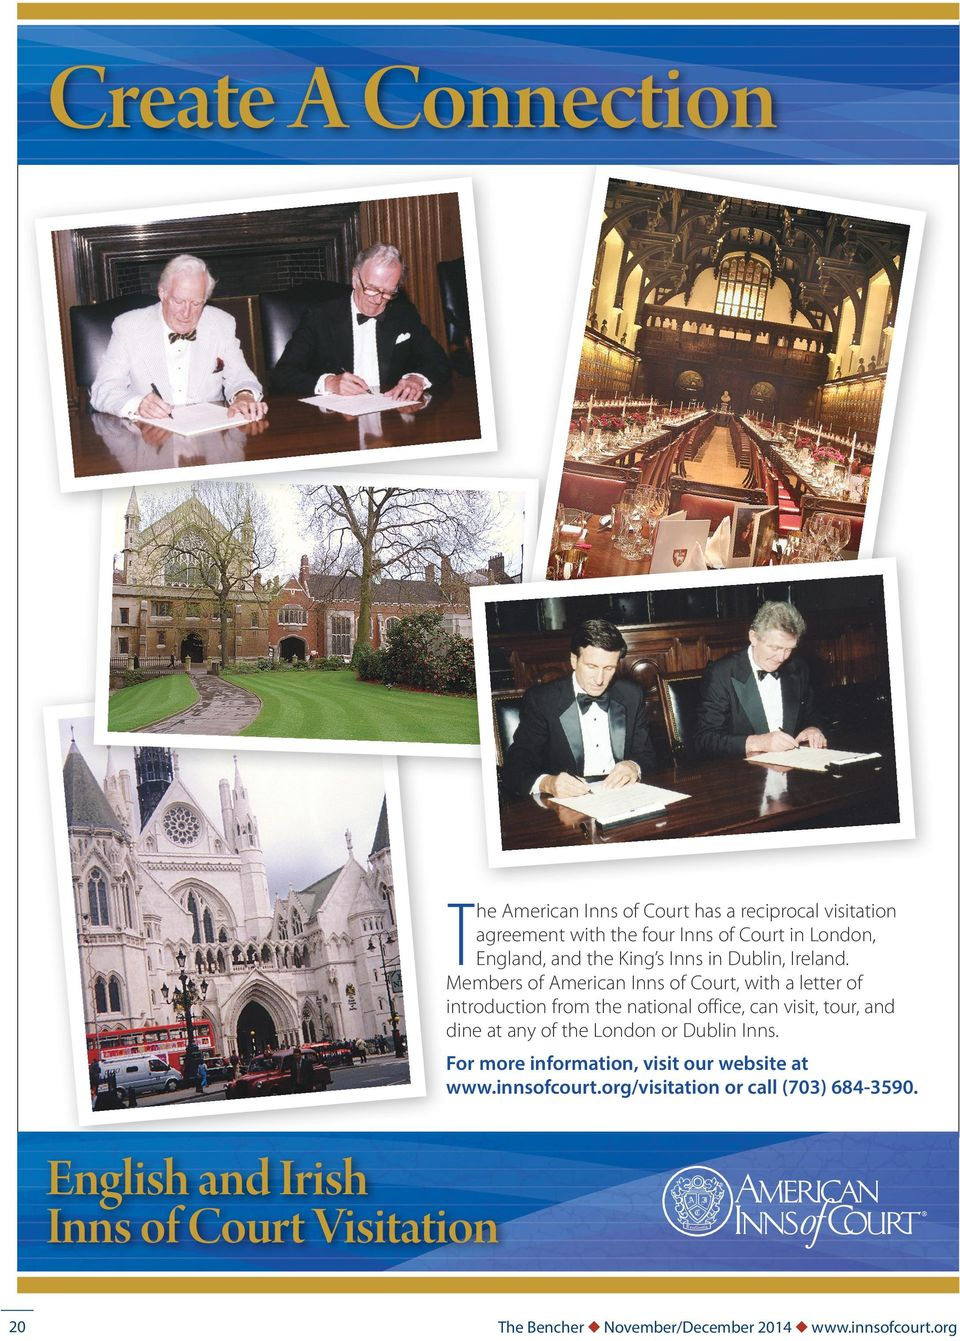 Members of American Inns of Court, with a letter of introduction from the national office, can visit, tour, and dine at any of the